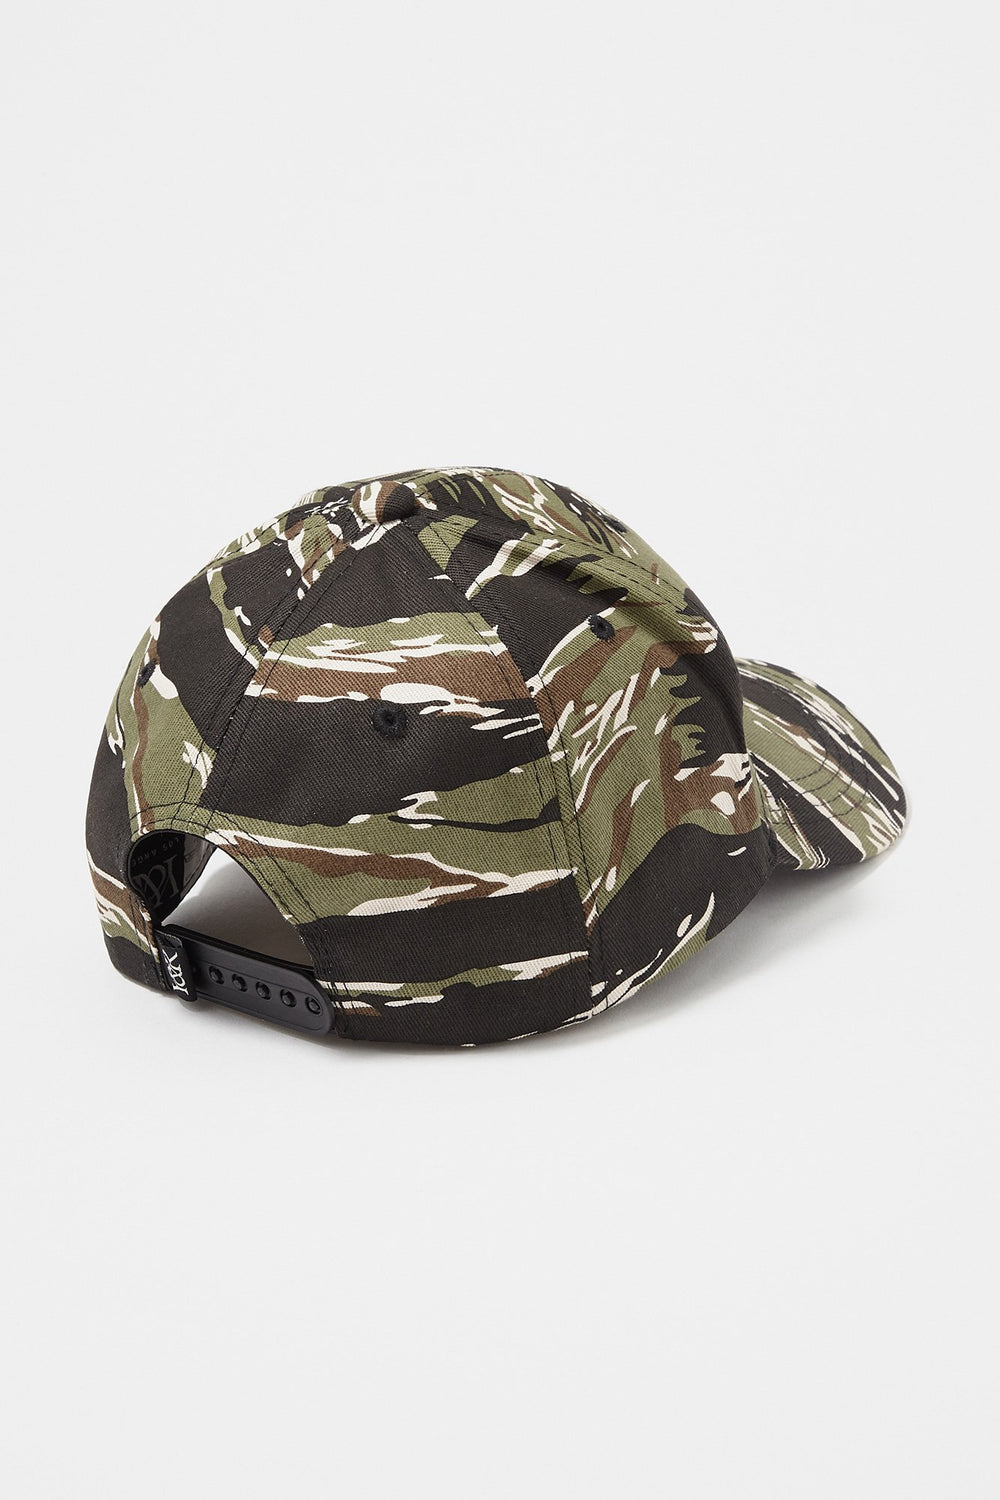 Casquette Camouflage Tigré Young & Reckless Camoufle